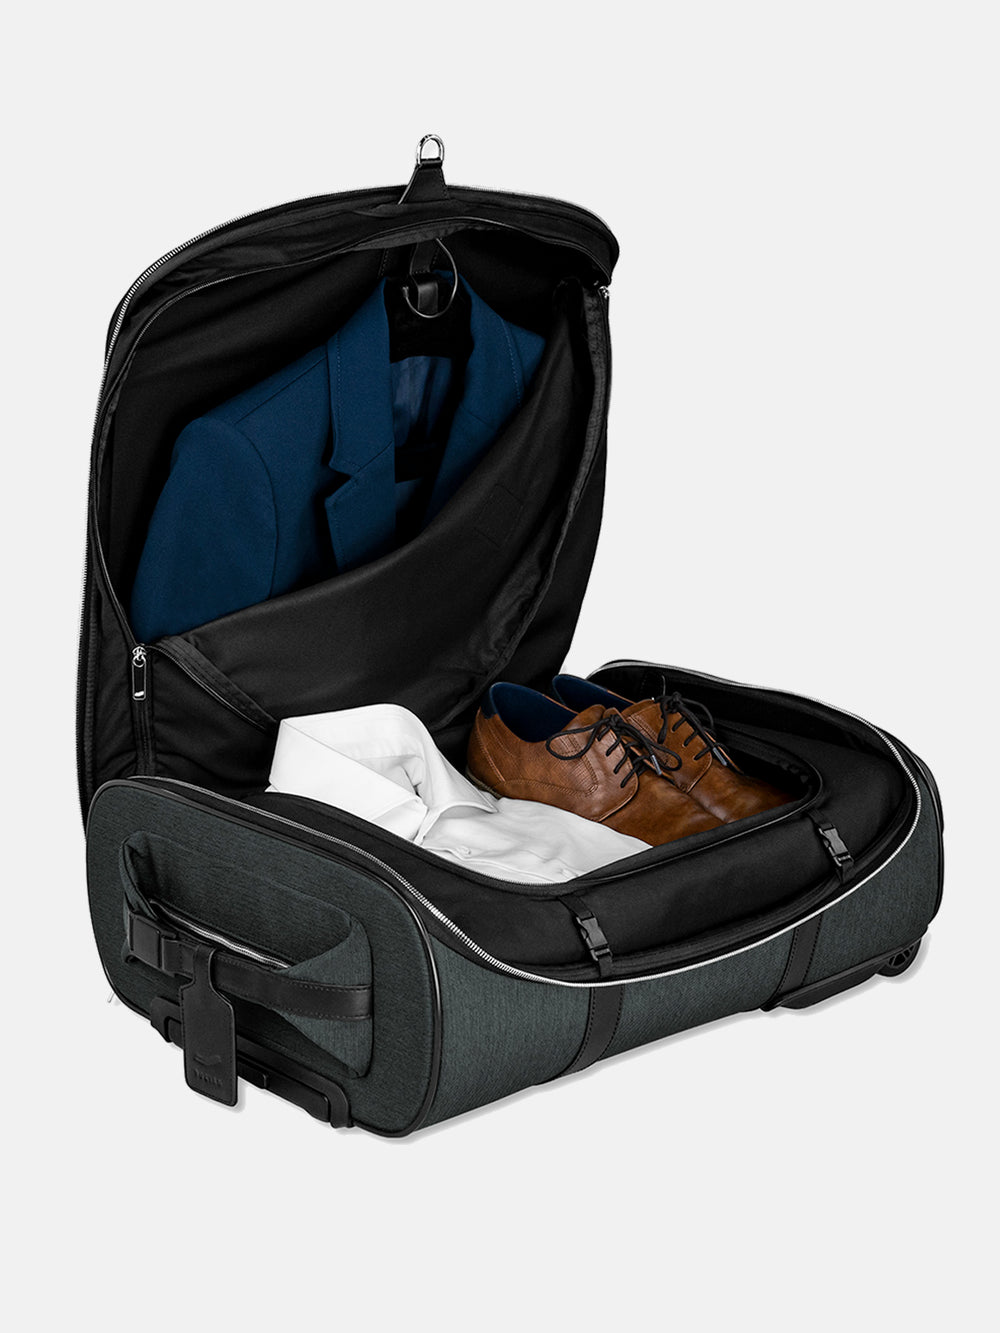 cp38 carry on luggage set with suit compartment